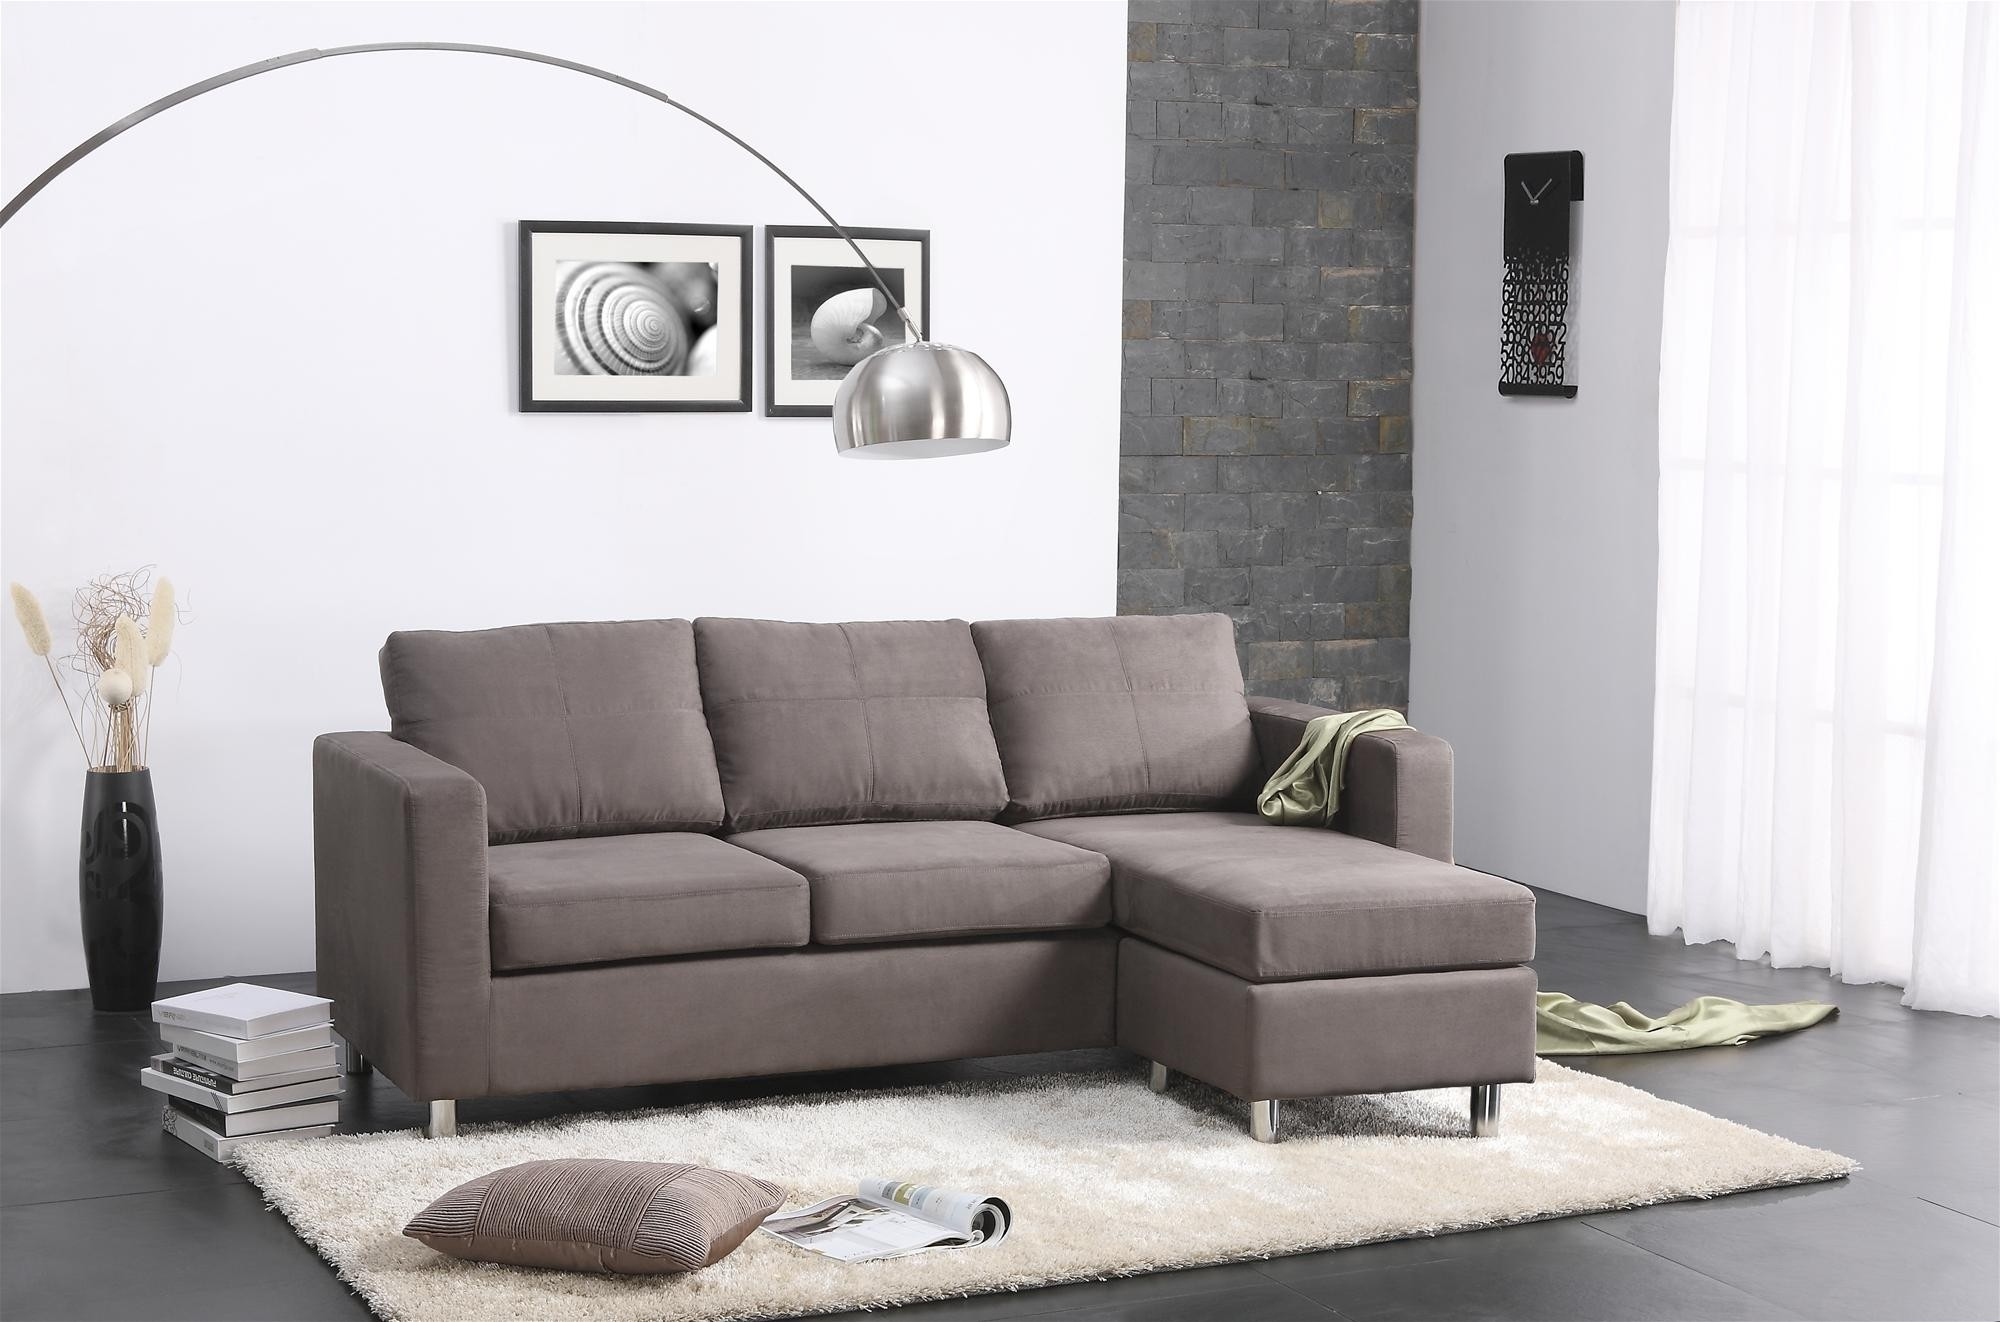 Superb Small Space Sectional Sofa #1606 : Furniture – Best Furniture Throughout Narrow Spaces Sectional Sofas (View 6 of 10)